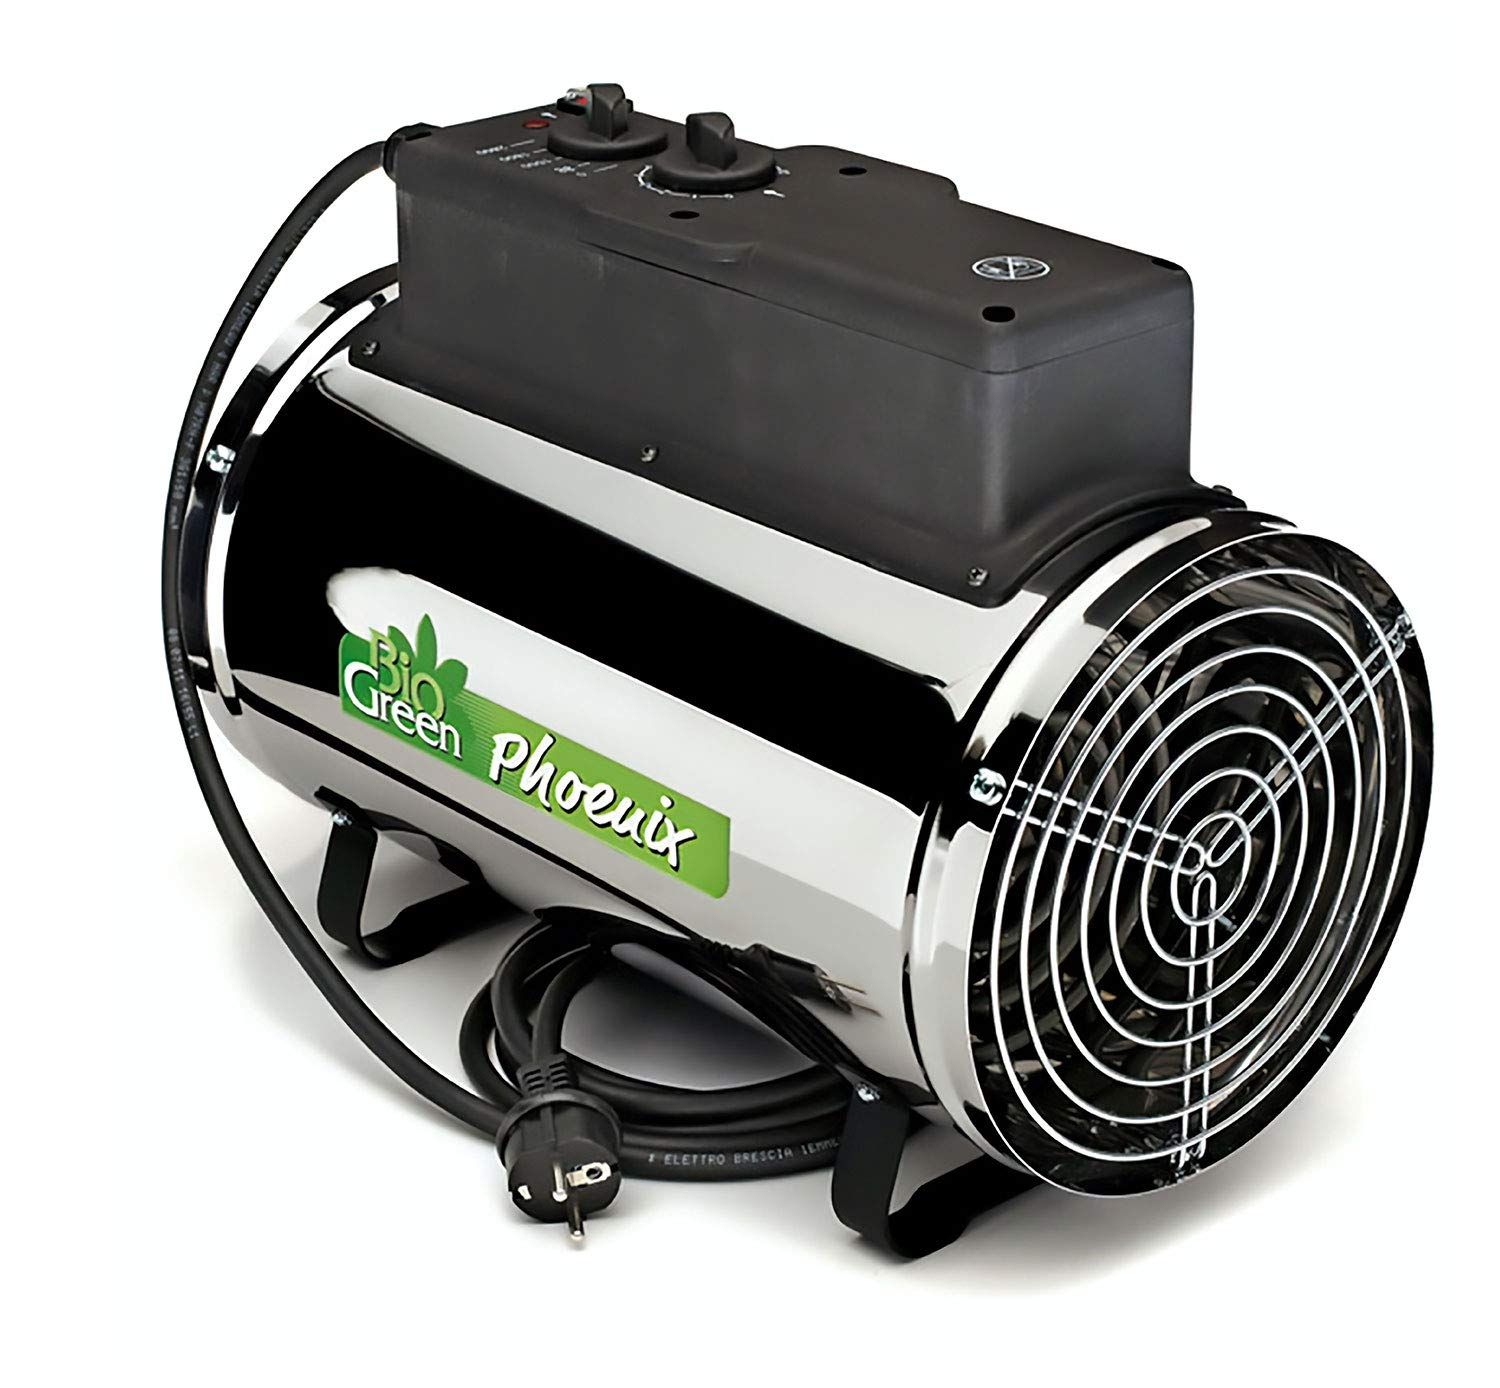 Bio Green PHX 2.8/US Phoenix Electric 3412/6141/9553 BTU 1000/1800/2800 W-240 V Greenhouse Heater, 2 Years Warrenty, 18 x 15 x 11 in, Silver by Bio Green